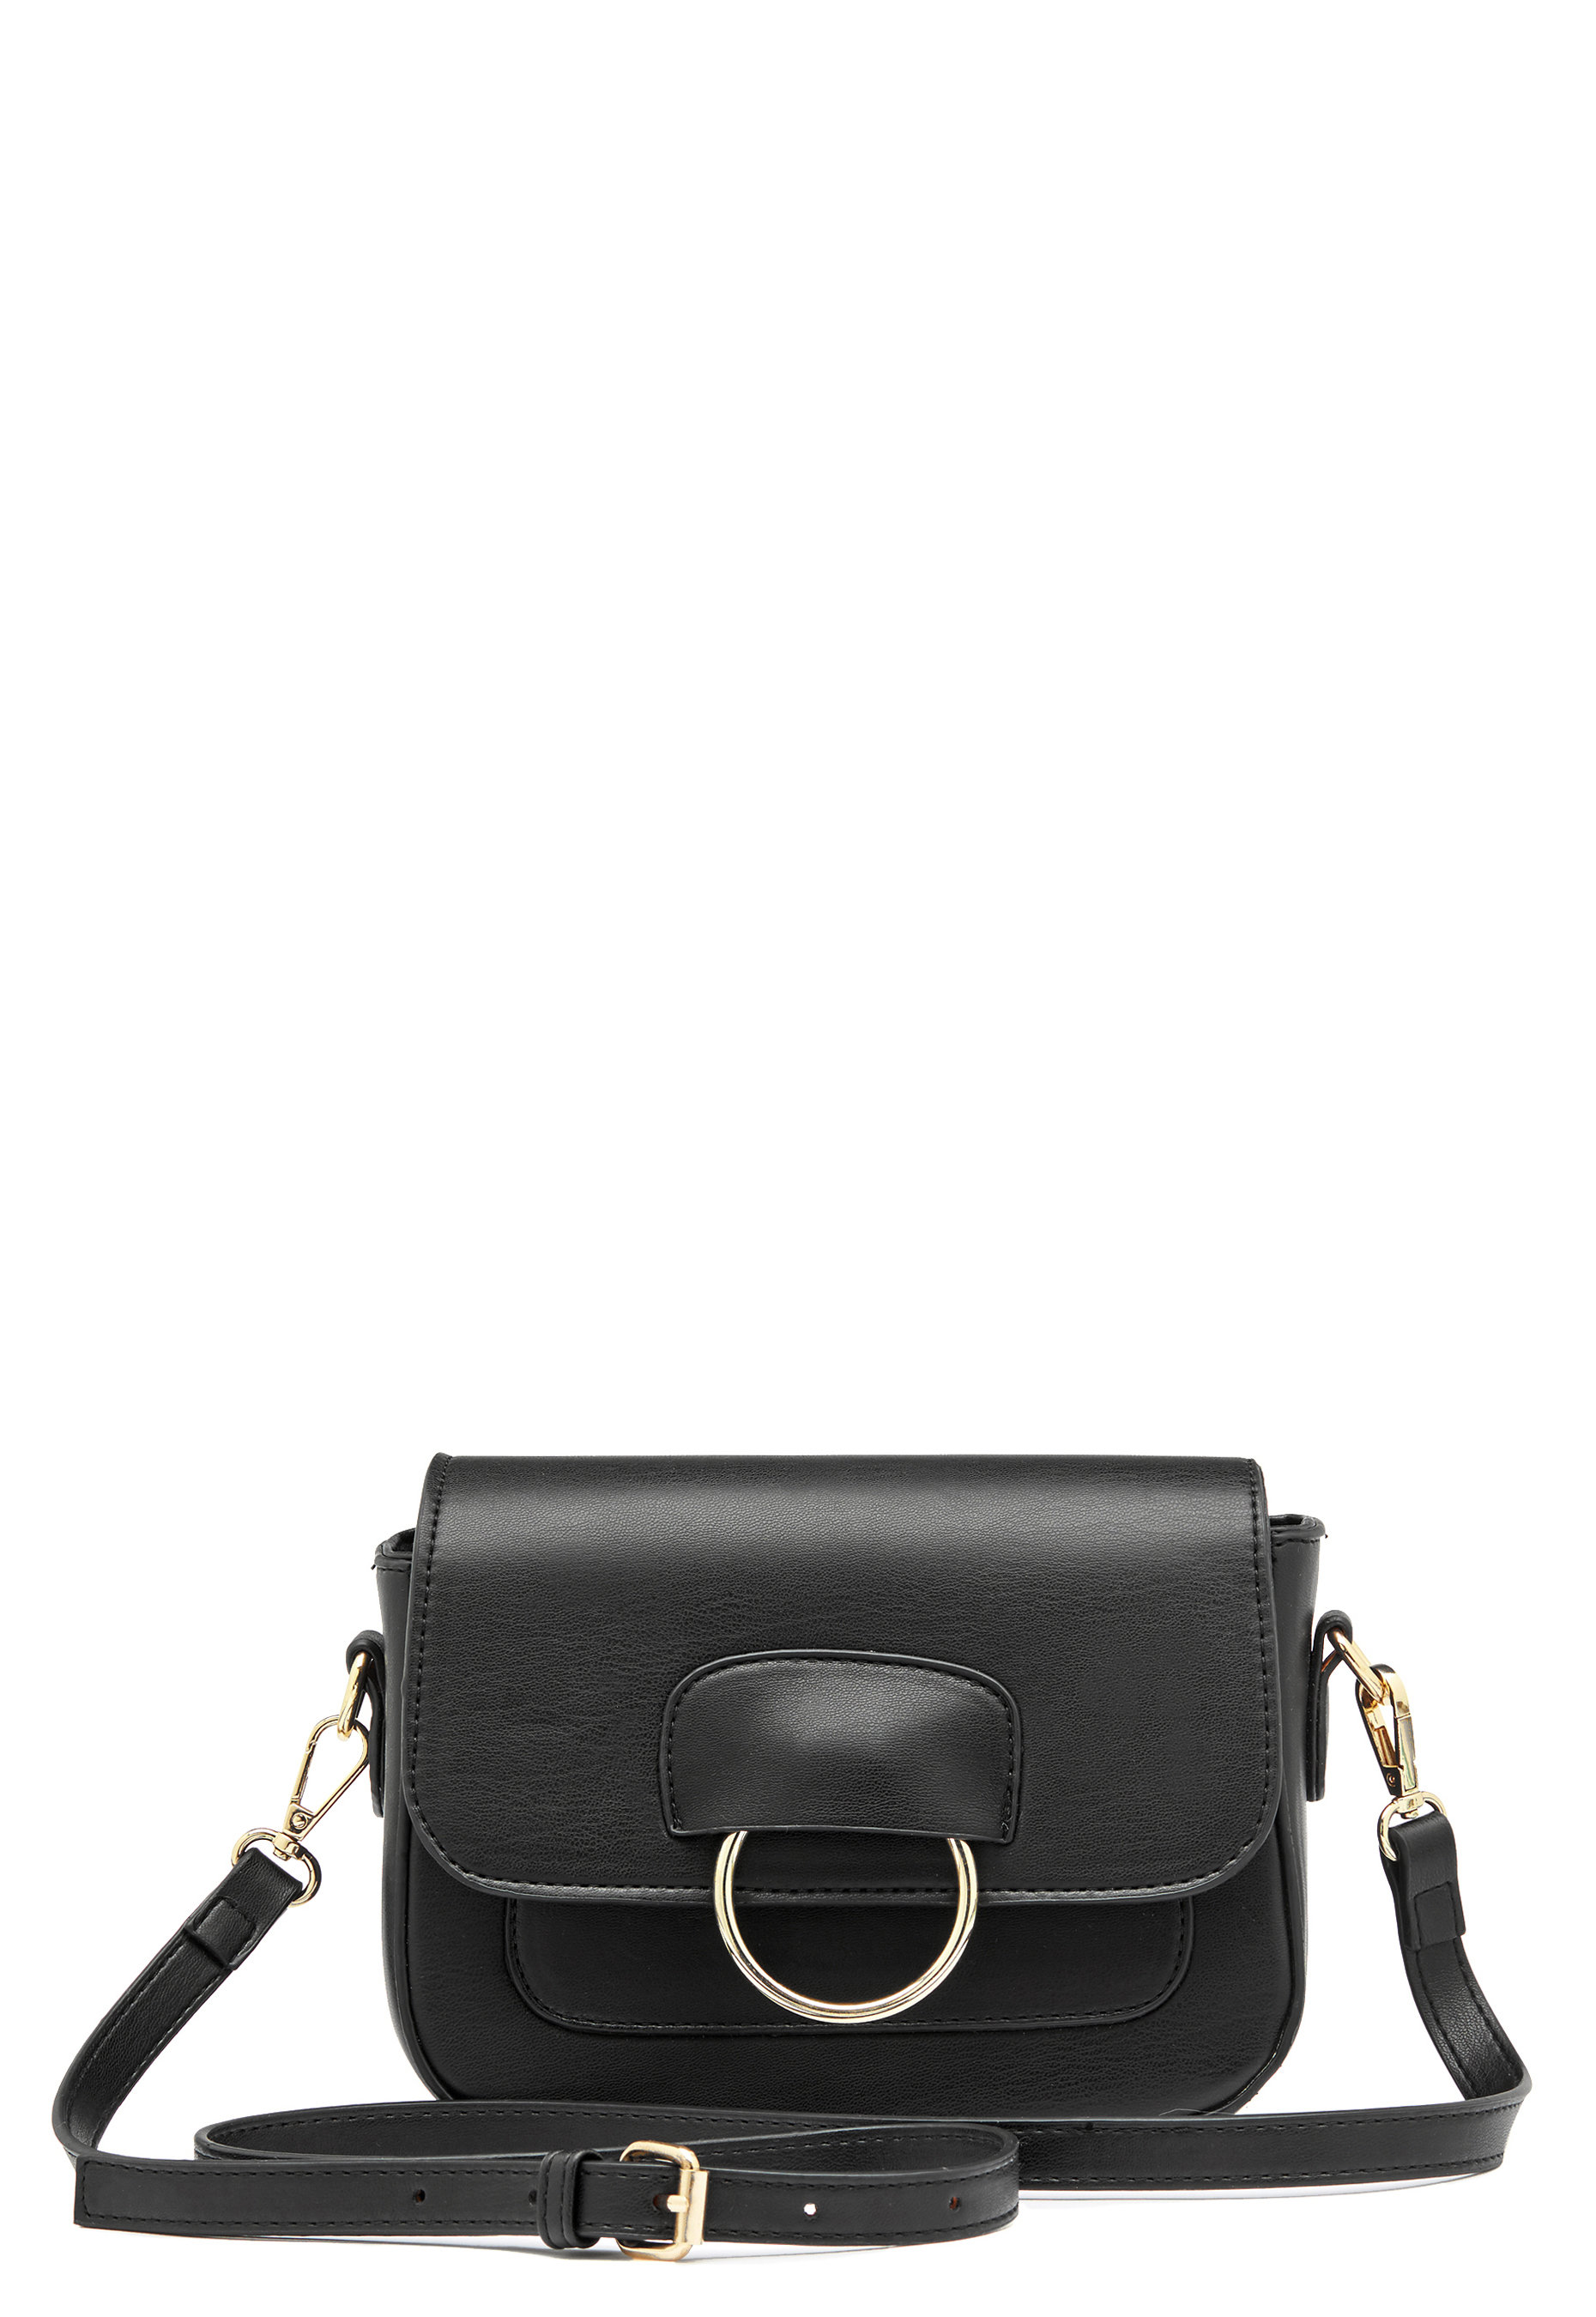 VERO MODA Risa Cross Over Bag Black - Bubbleroom b4c3a8e575ace